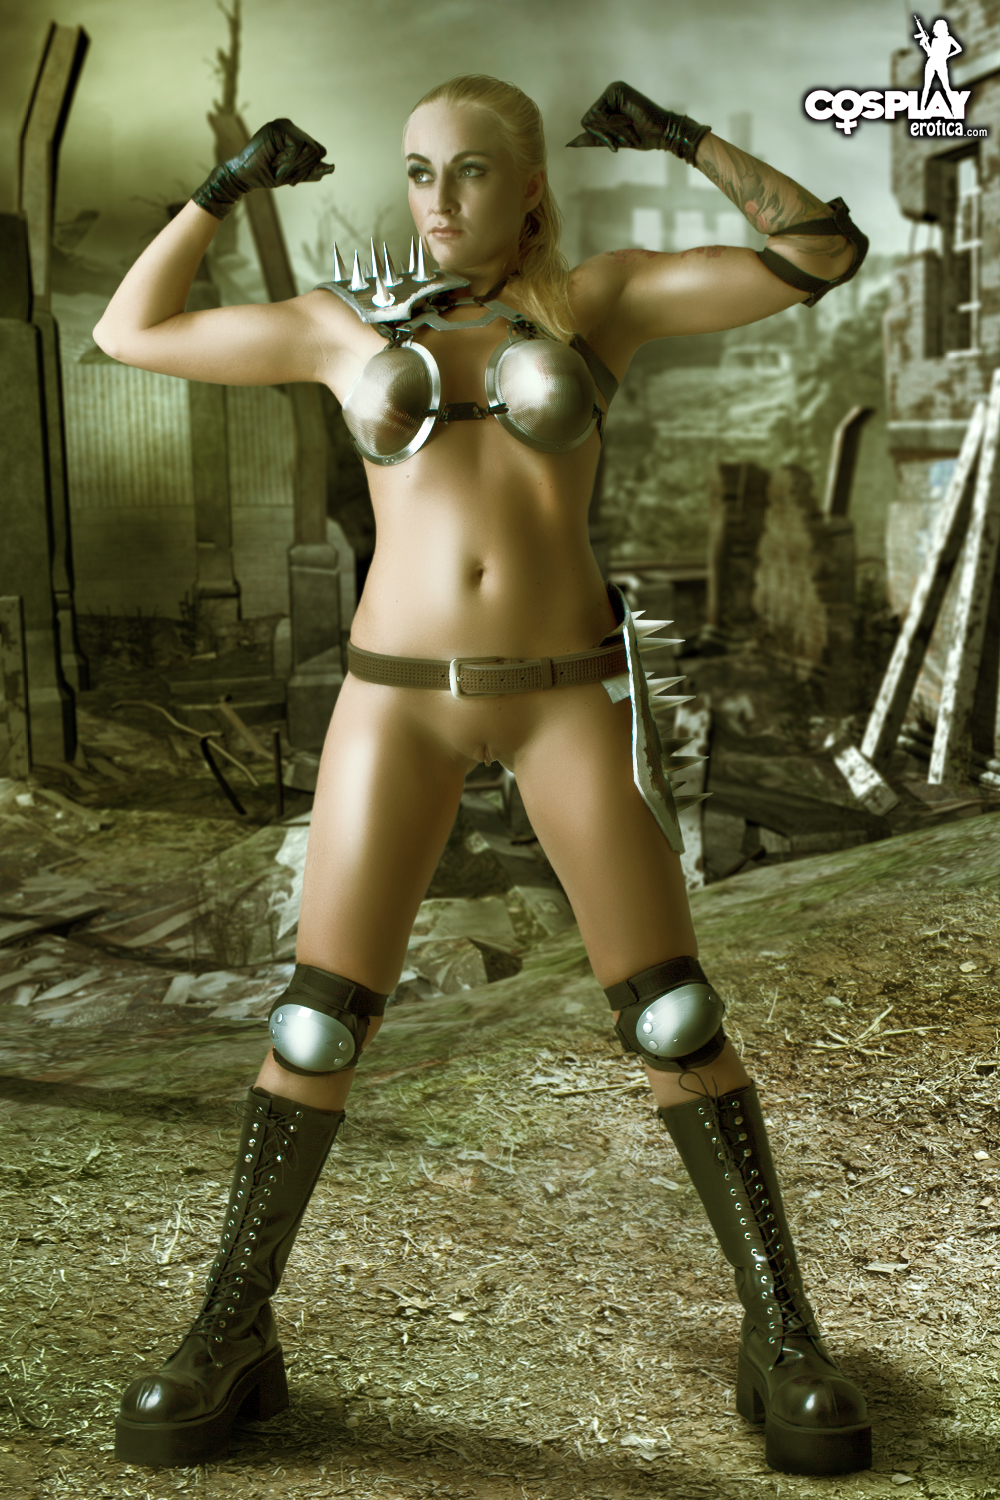 Fallout raider nude fakes porncraft photo